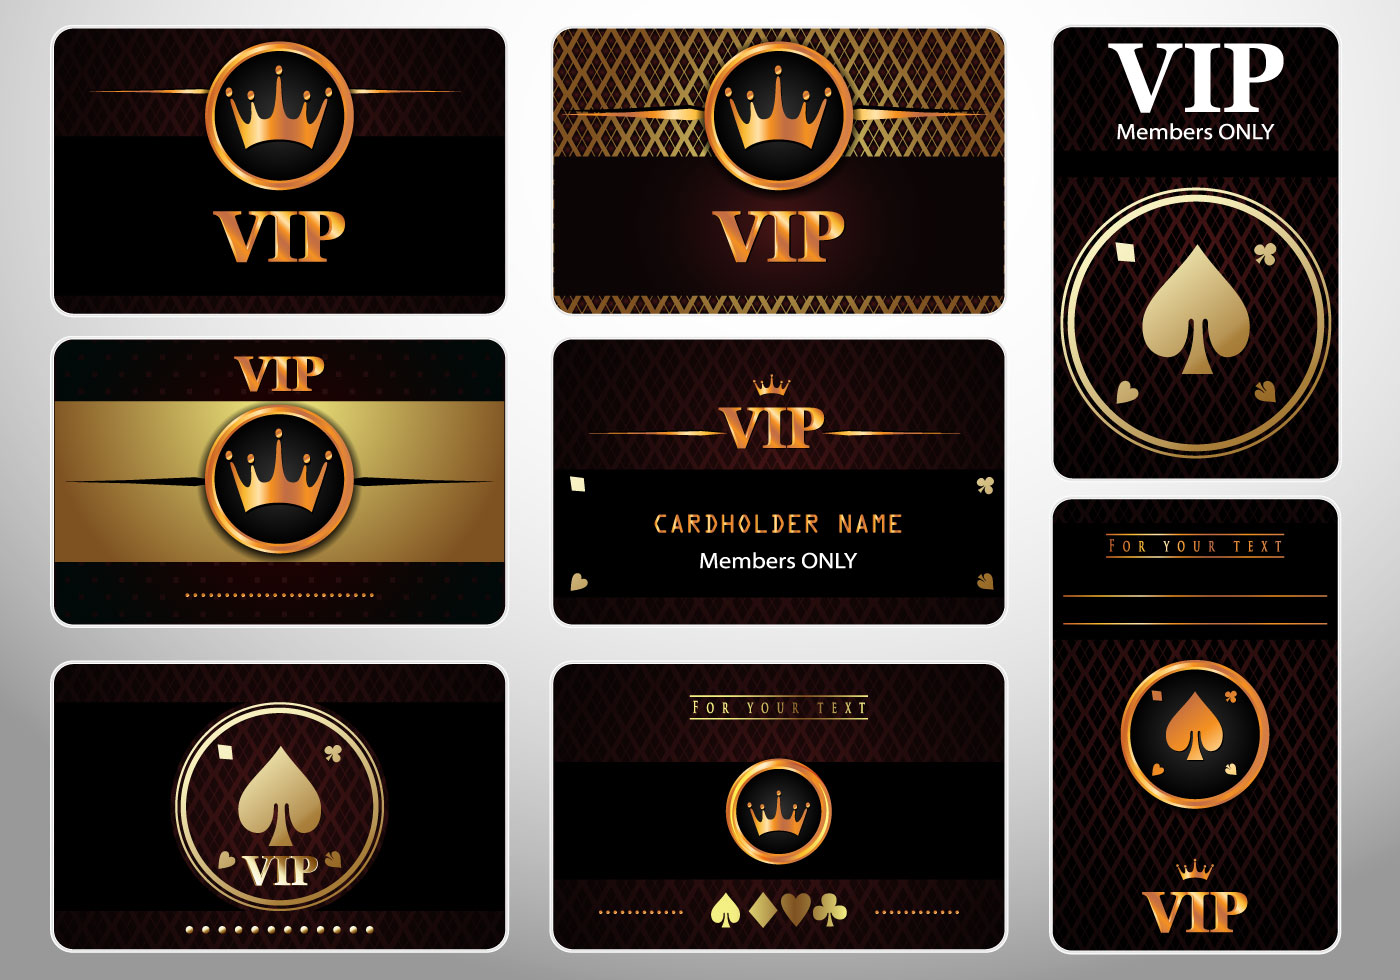 Set of VIP Cards Casino Royale - Download Free Vector Art